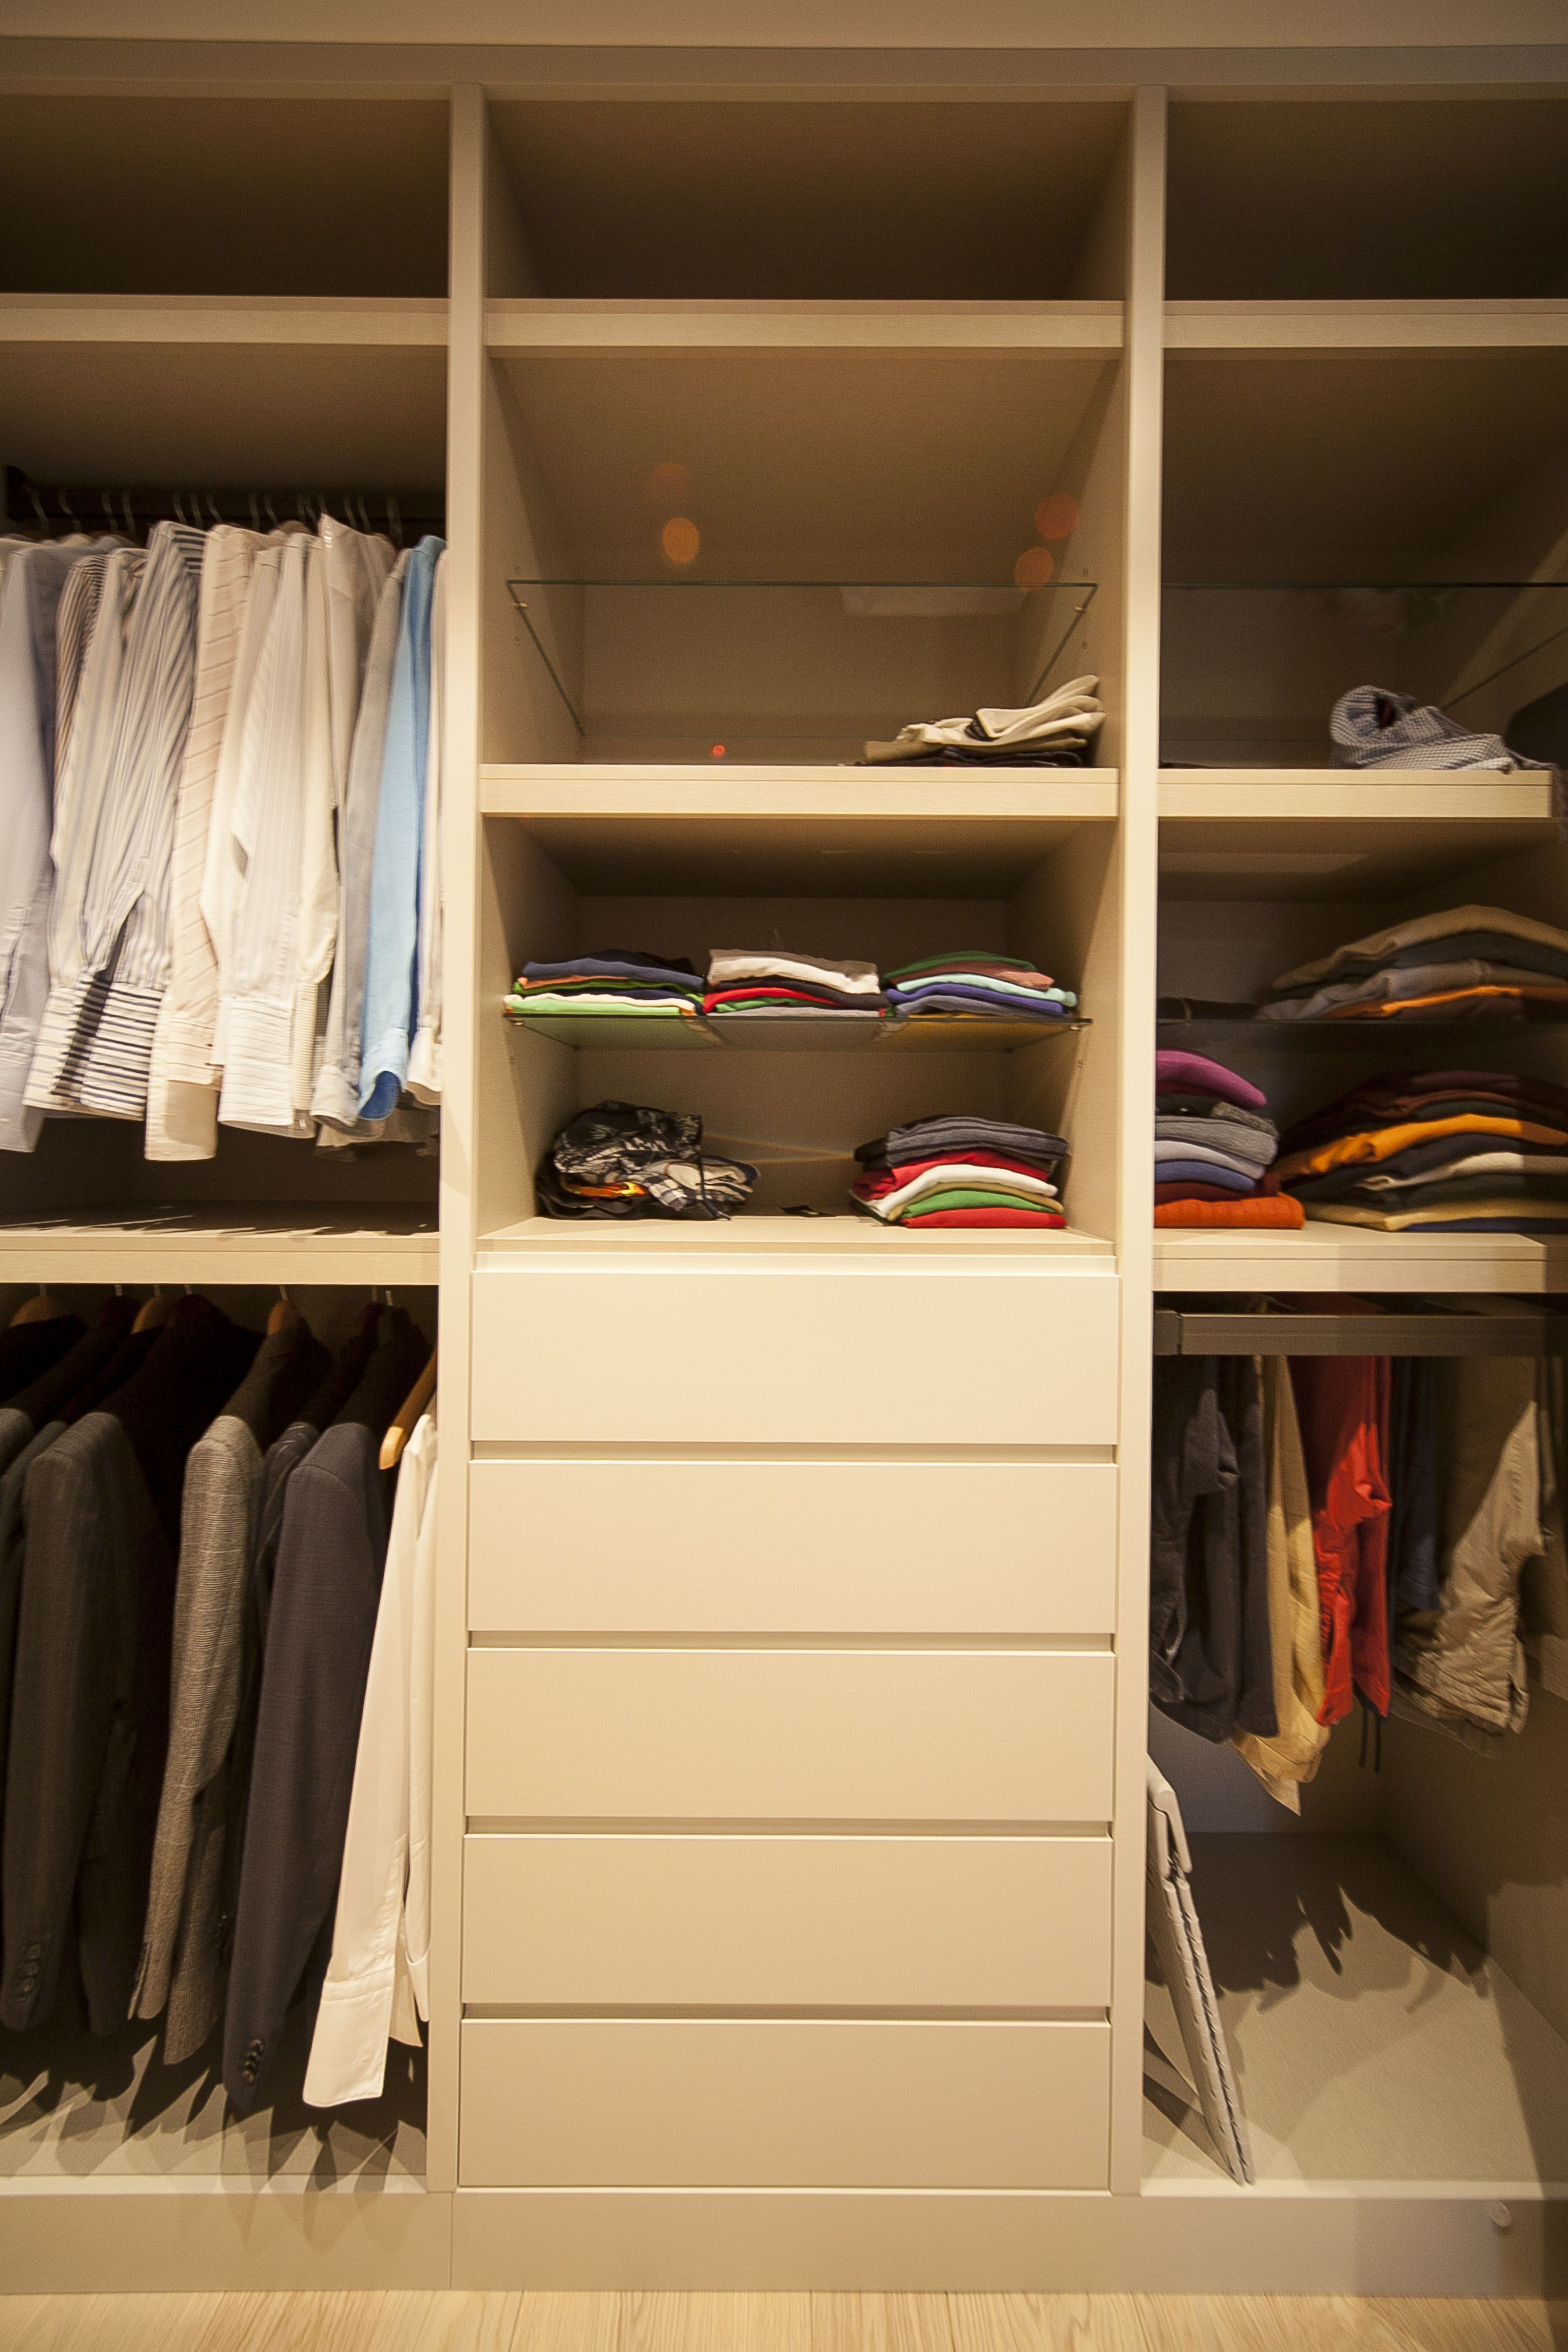 Online 3D closet planner for Home > Design the walk-in of your dream | PRODBOARD